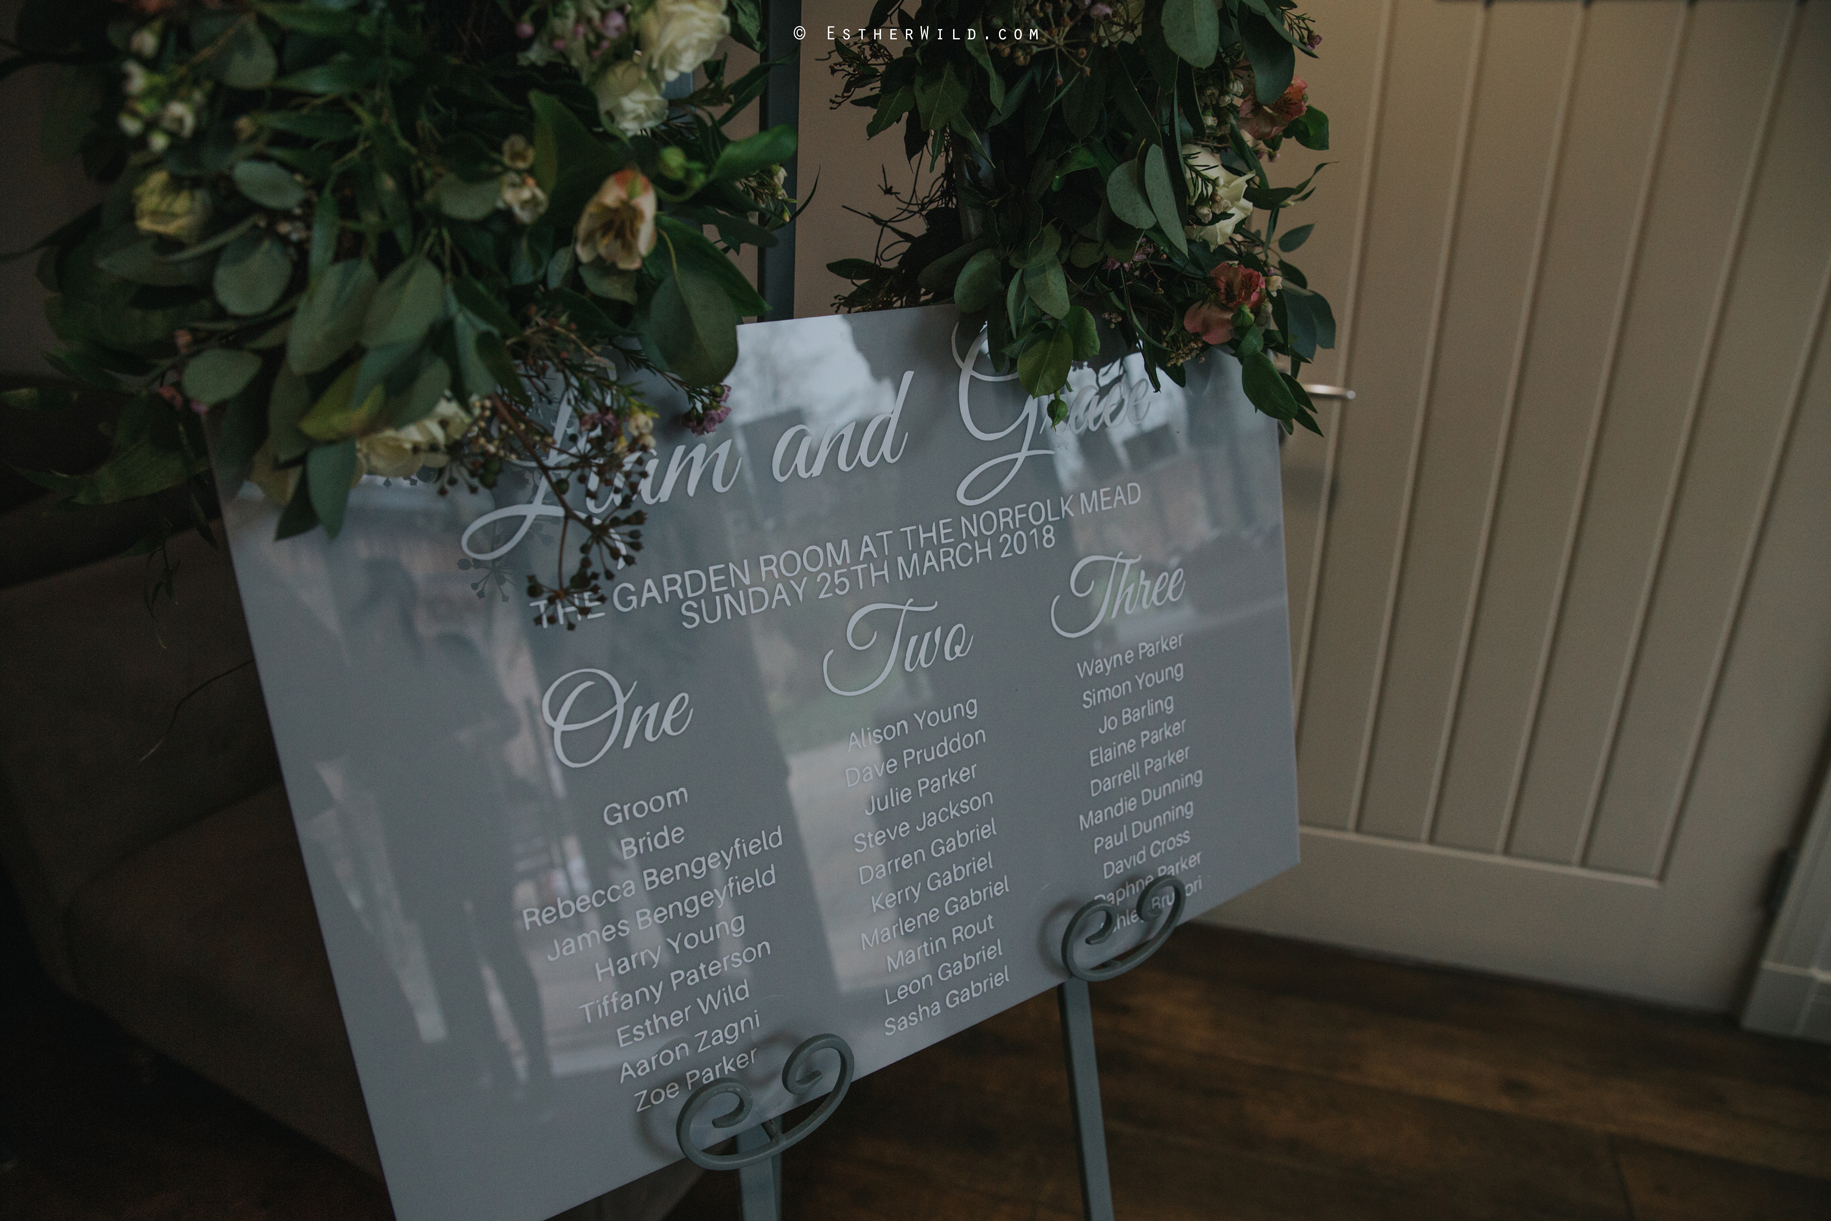 Norfolk_Mead_Hotel_Norwich_Wedding_Copyright_Esther_Wild_Photographer_IMG_0338.jpg